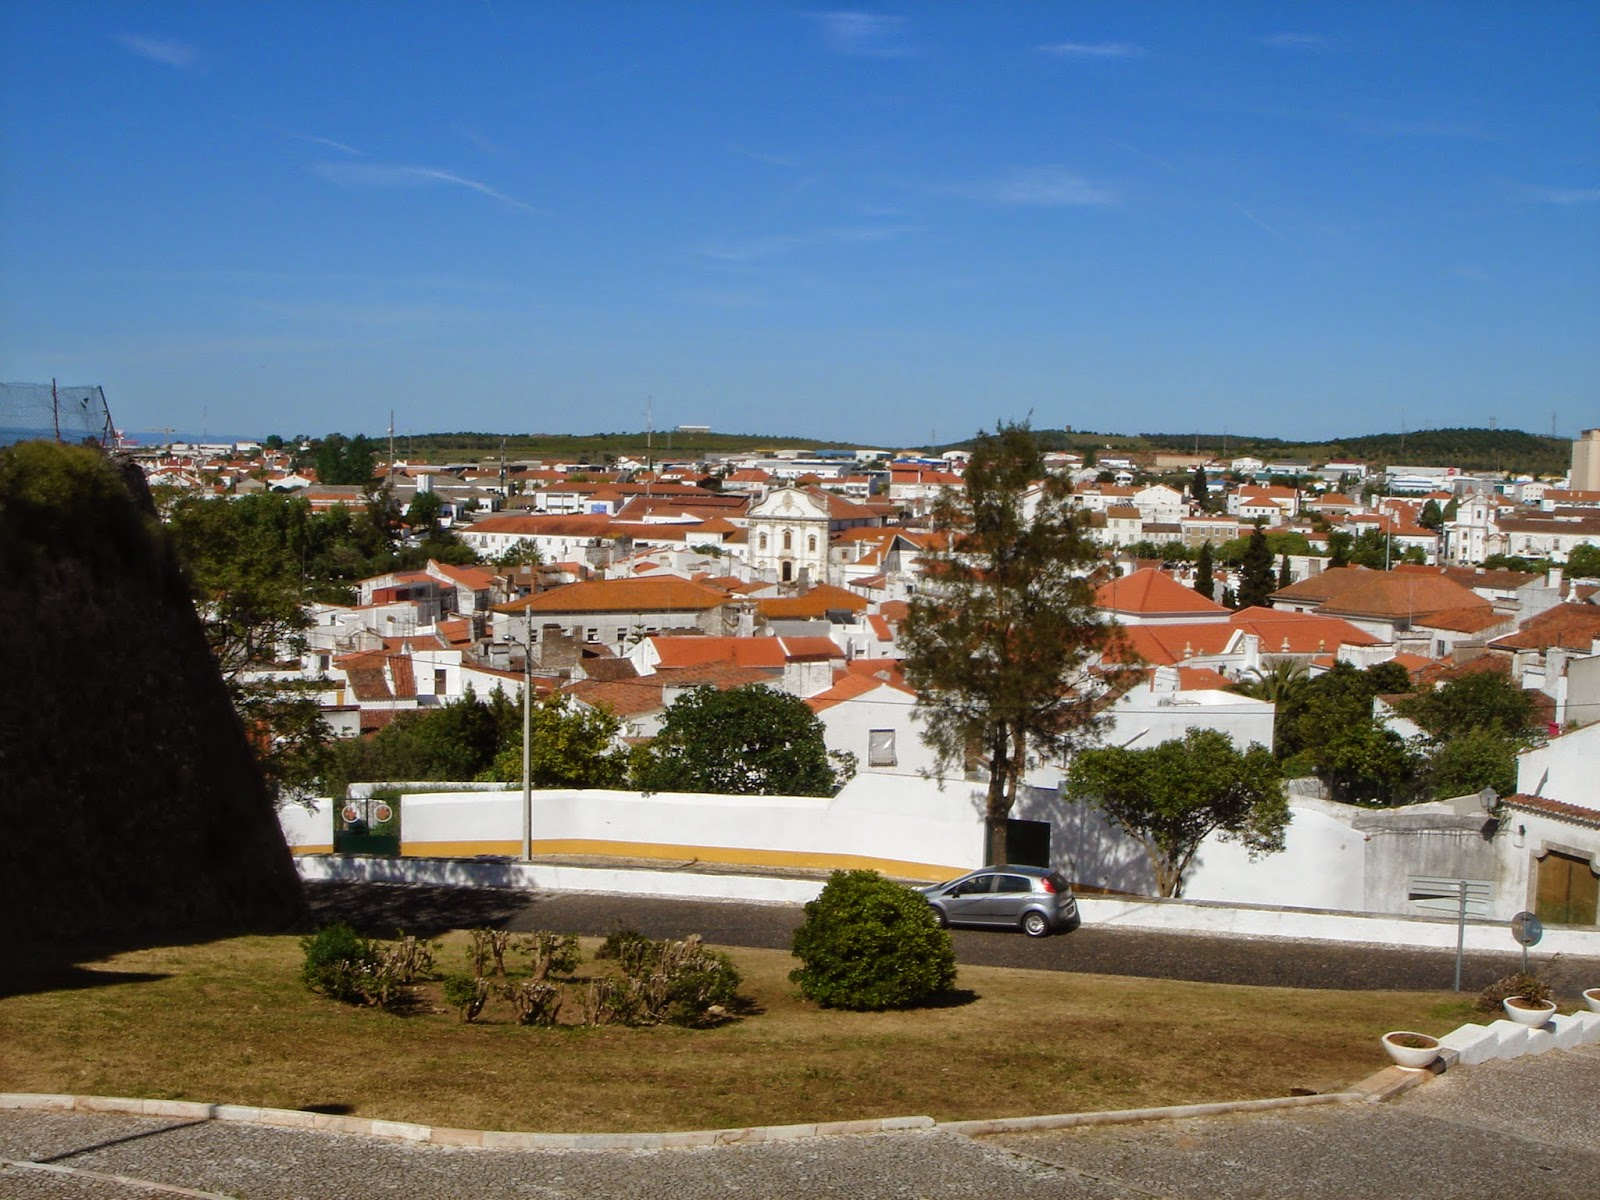 Estremoz Portugal  City new picture : Historia y Genealogía: Estremoz. Alentejo. Portugal